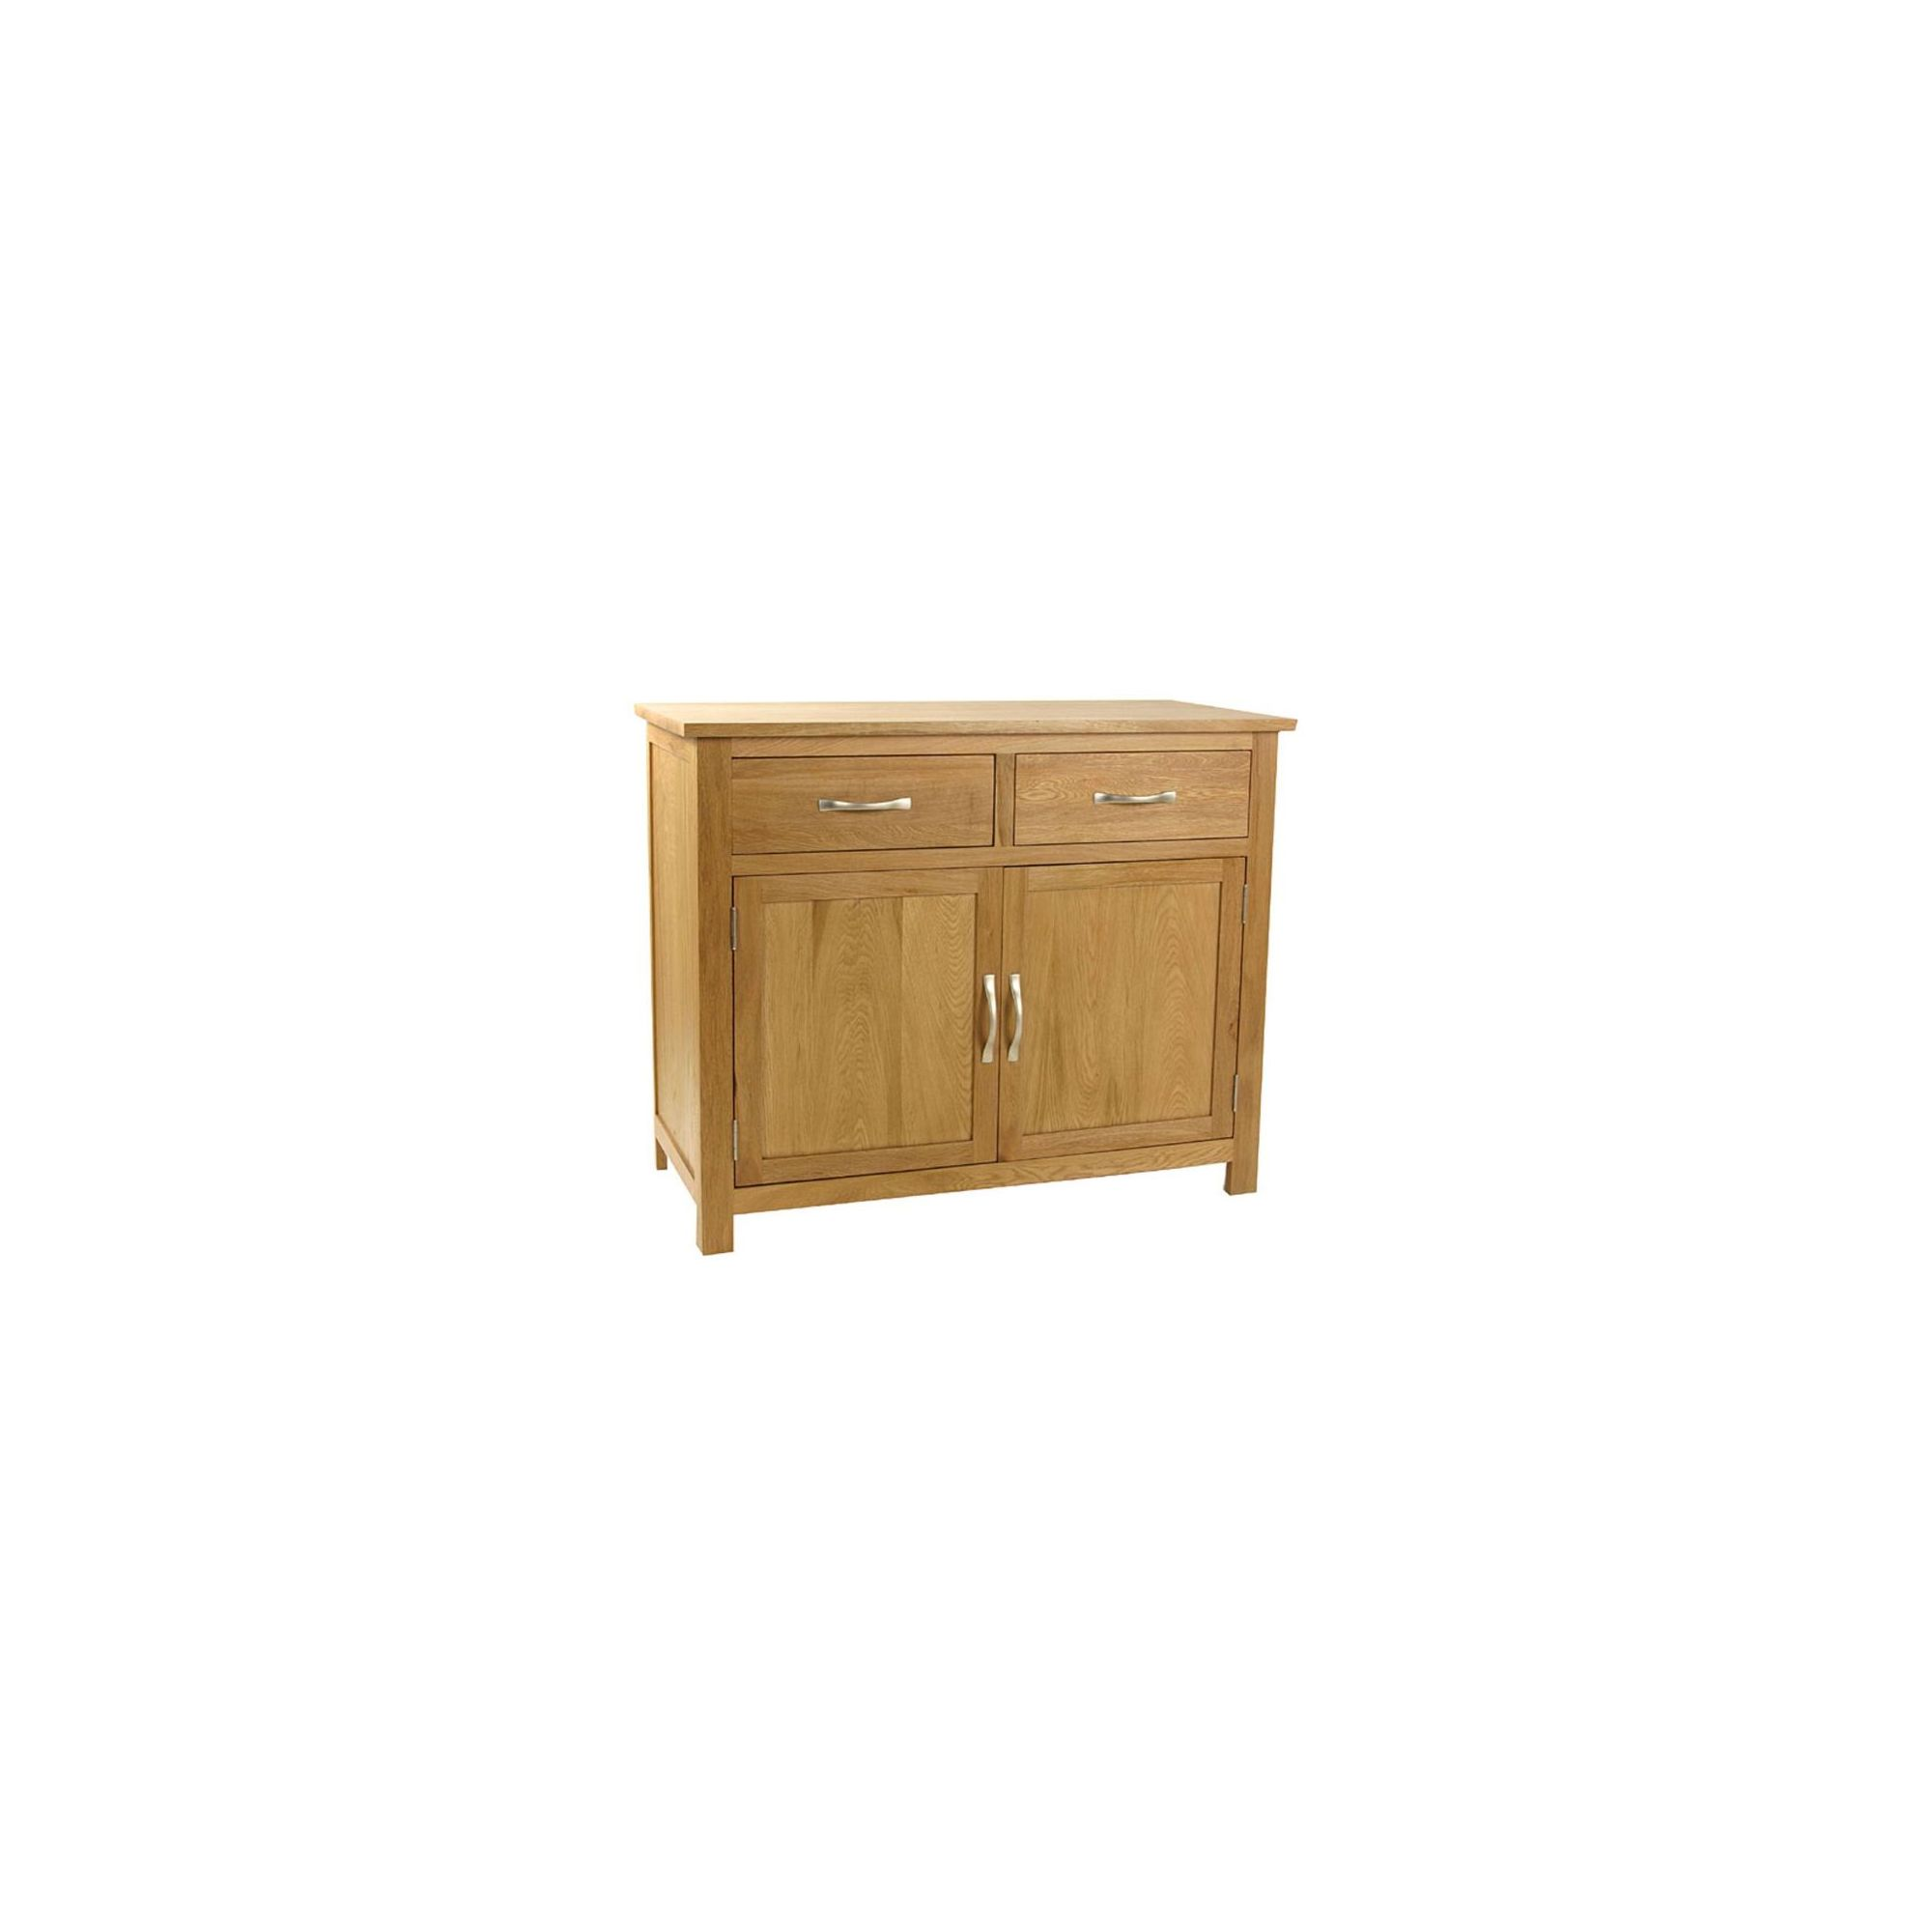 Kelburn Furniture Essentials 2 Drawer Sideboard in Light Oak Stain and Satin Lacquer at Tescos Direct